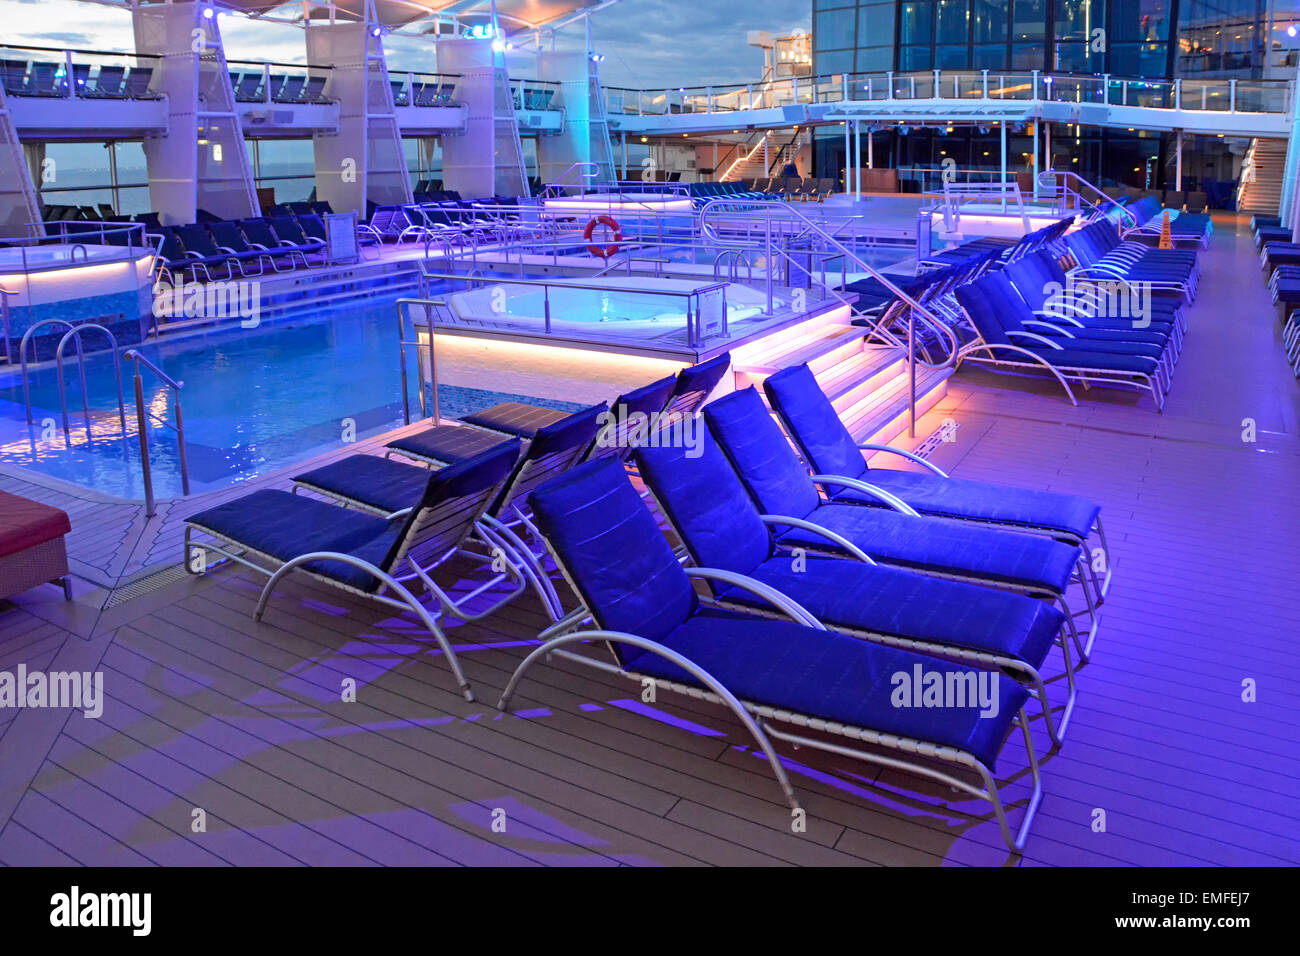 Blue night lighting on cruise ship pool deck at end of day with passengers below decks for evening meal ocean liner - Stock Image